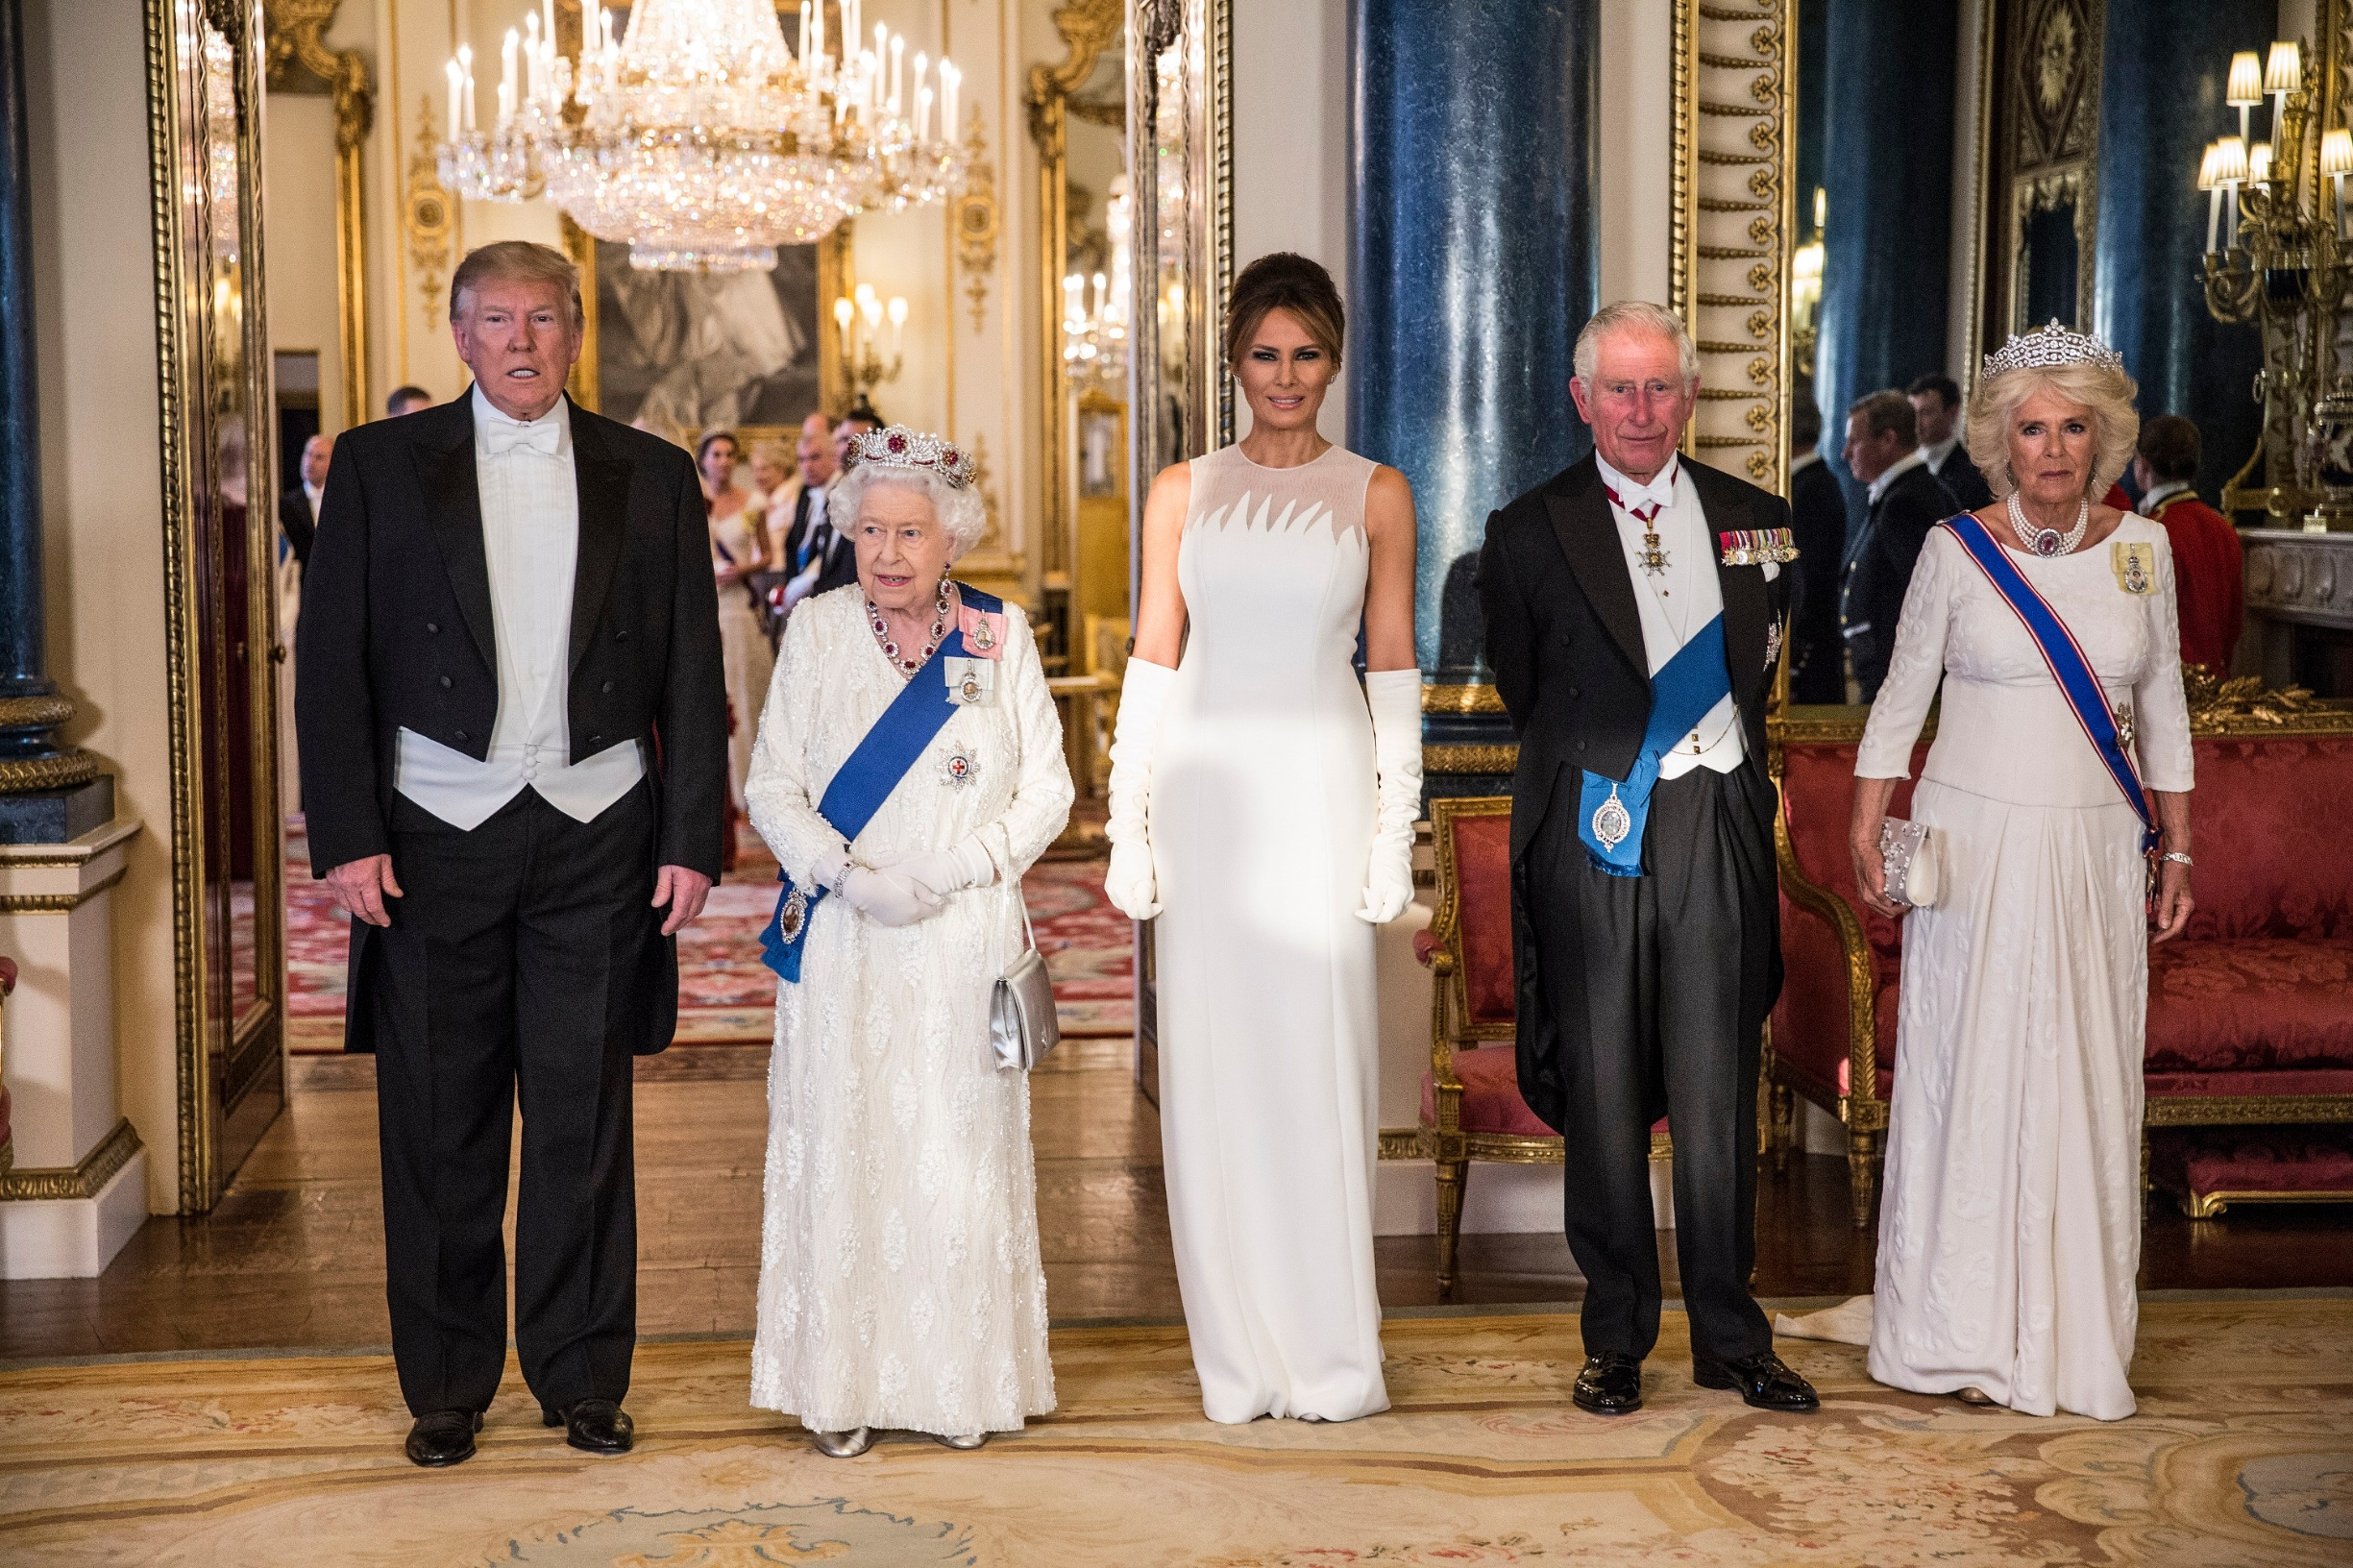 LONDON, ENGLAND - JUNE 03: (L-R) U.S. President Donald Trump, Queen Elizabeth II, First Lady Melania Trump, Prince Charles Prince of Wales and Camilla Duchess of Cornwall attend a State Banquet at Buckingham Palace on June 3, 2019 in London, England. President Trump's three-day state visit will include lunch with the Queen, and a State Banquet at Buckingham Palace, as well as business meetings with the Prime Minister and the Duke of York, before travelling to Portsmouth to mark the 75th anniversary of the D-Day landings.  (Photo by Jeff Gilbert - WPA Pool/Getty Images)